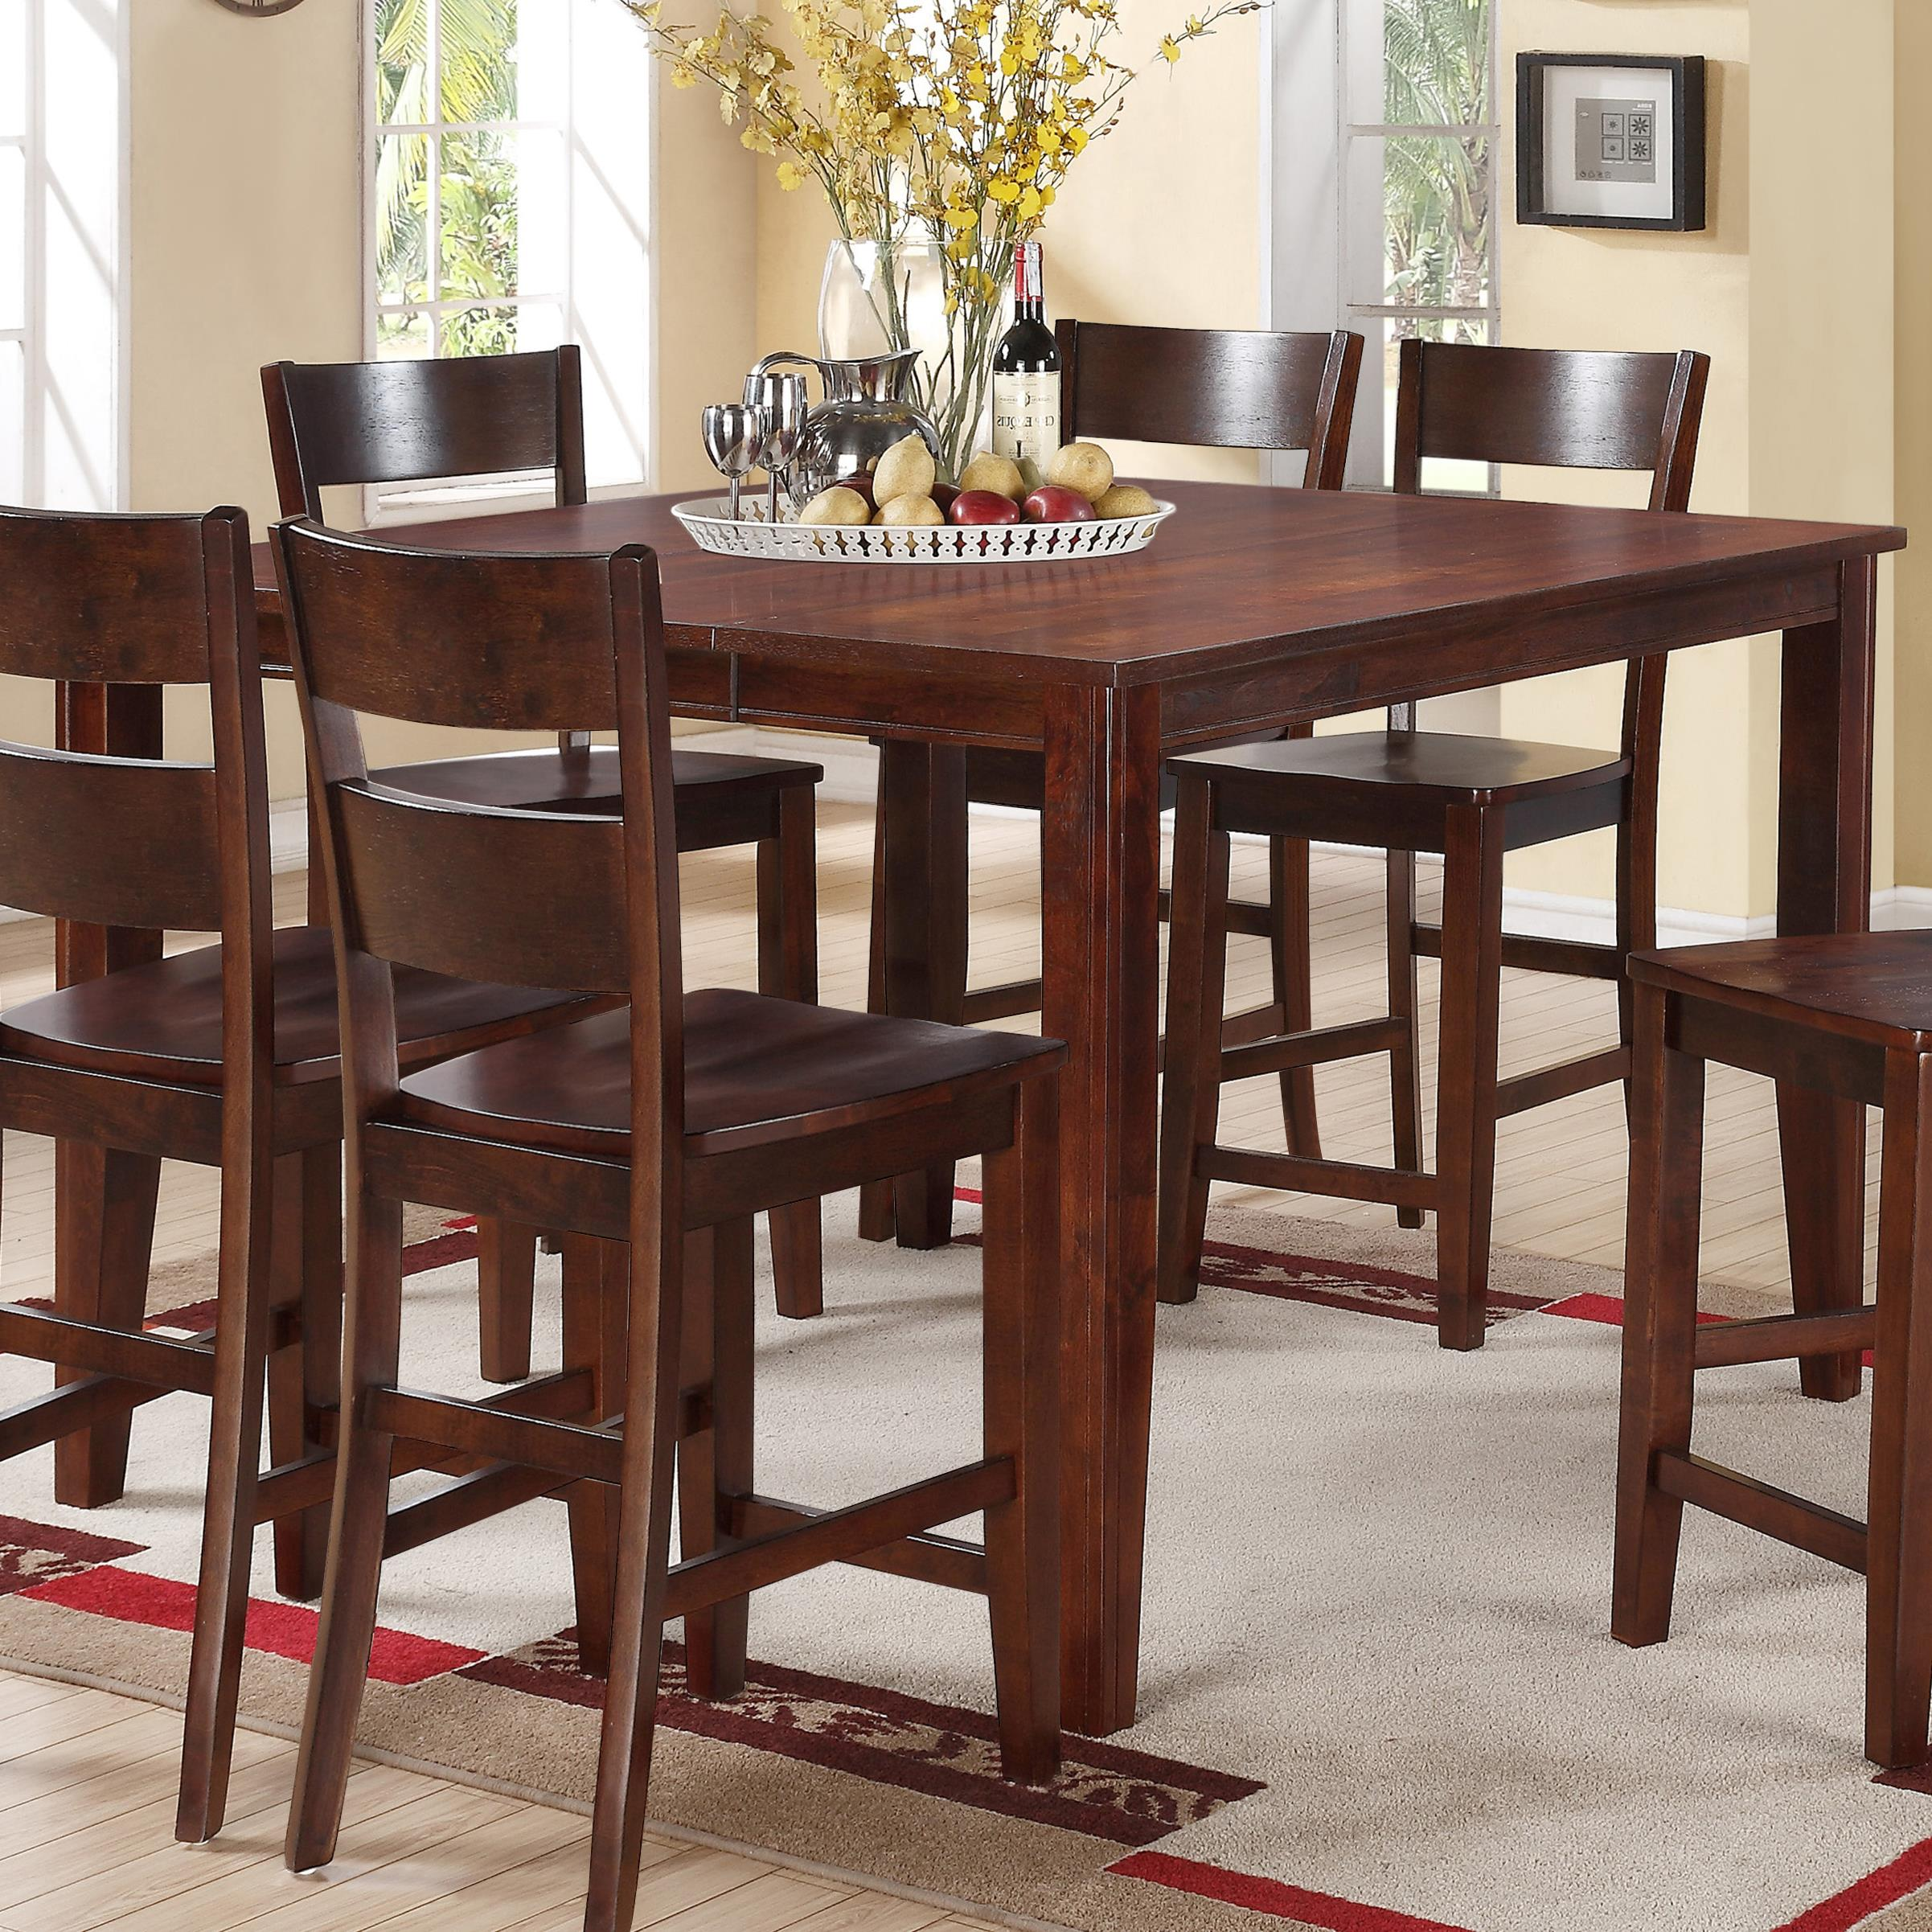 Holland House 8203 Square Counter Height Table with